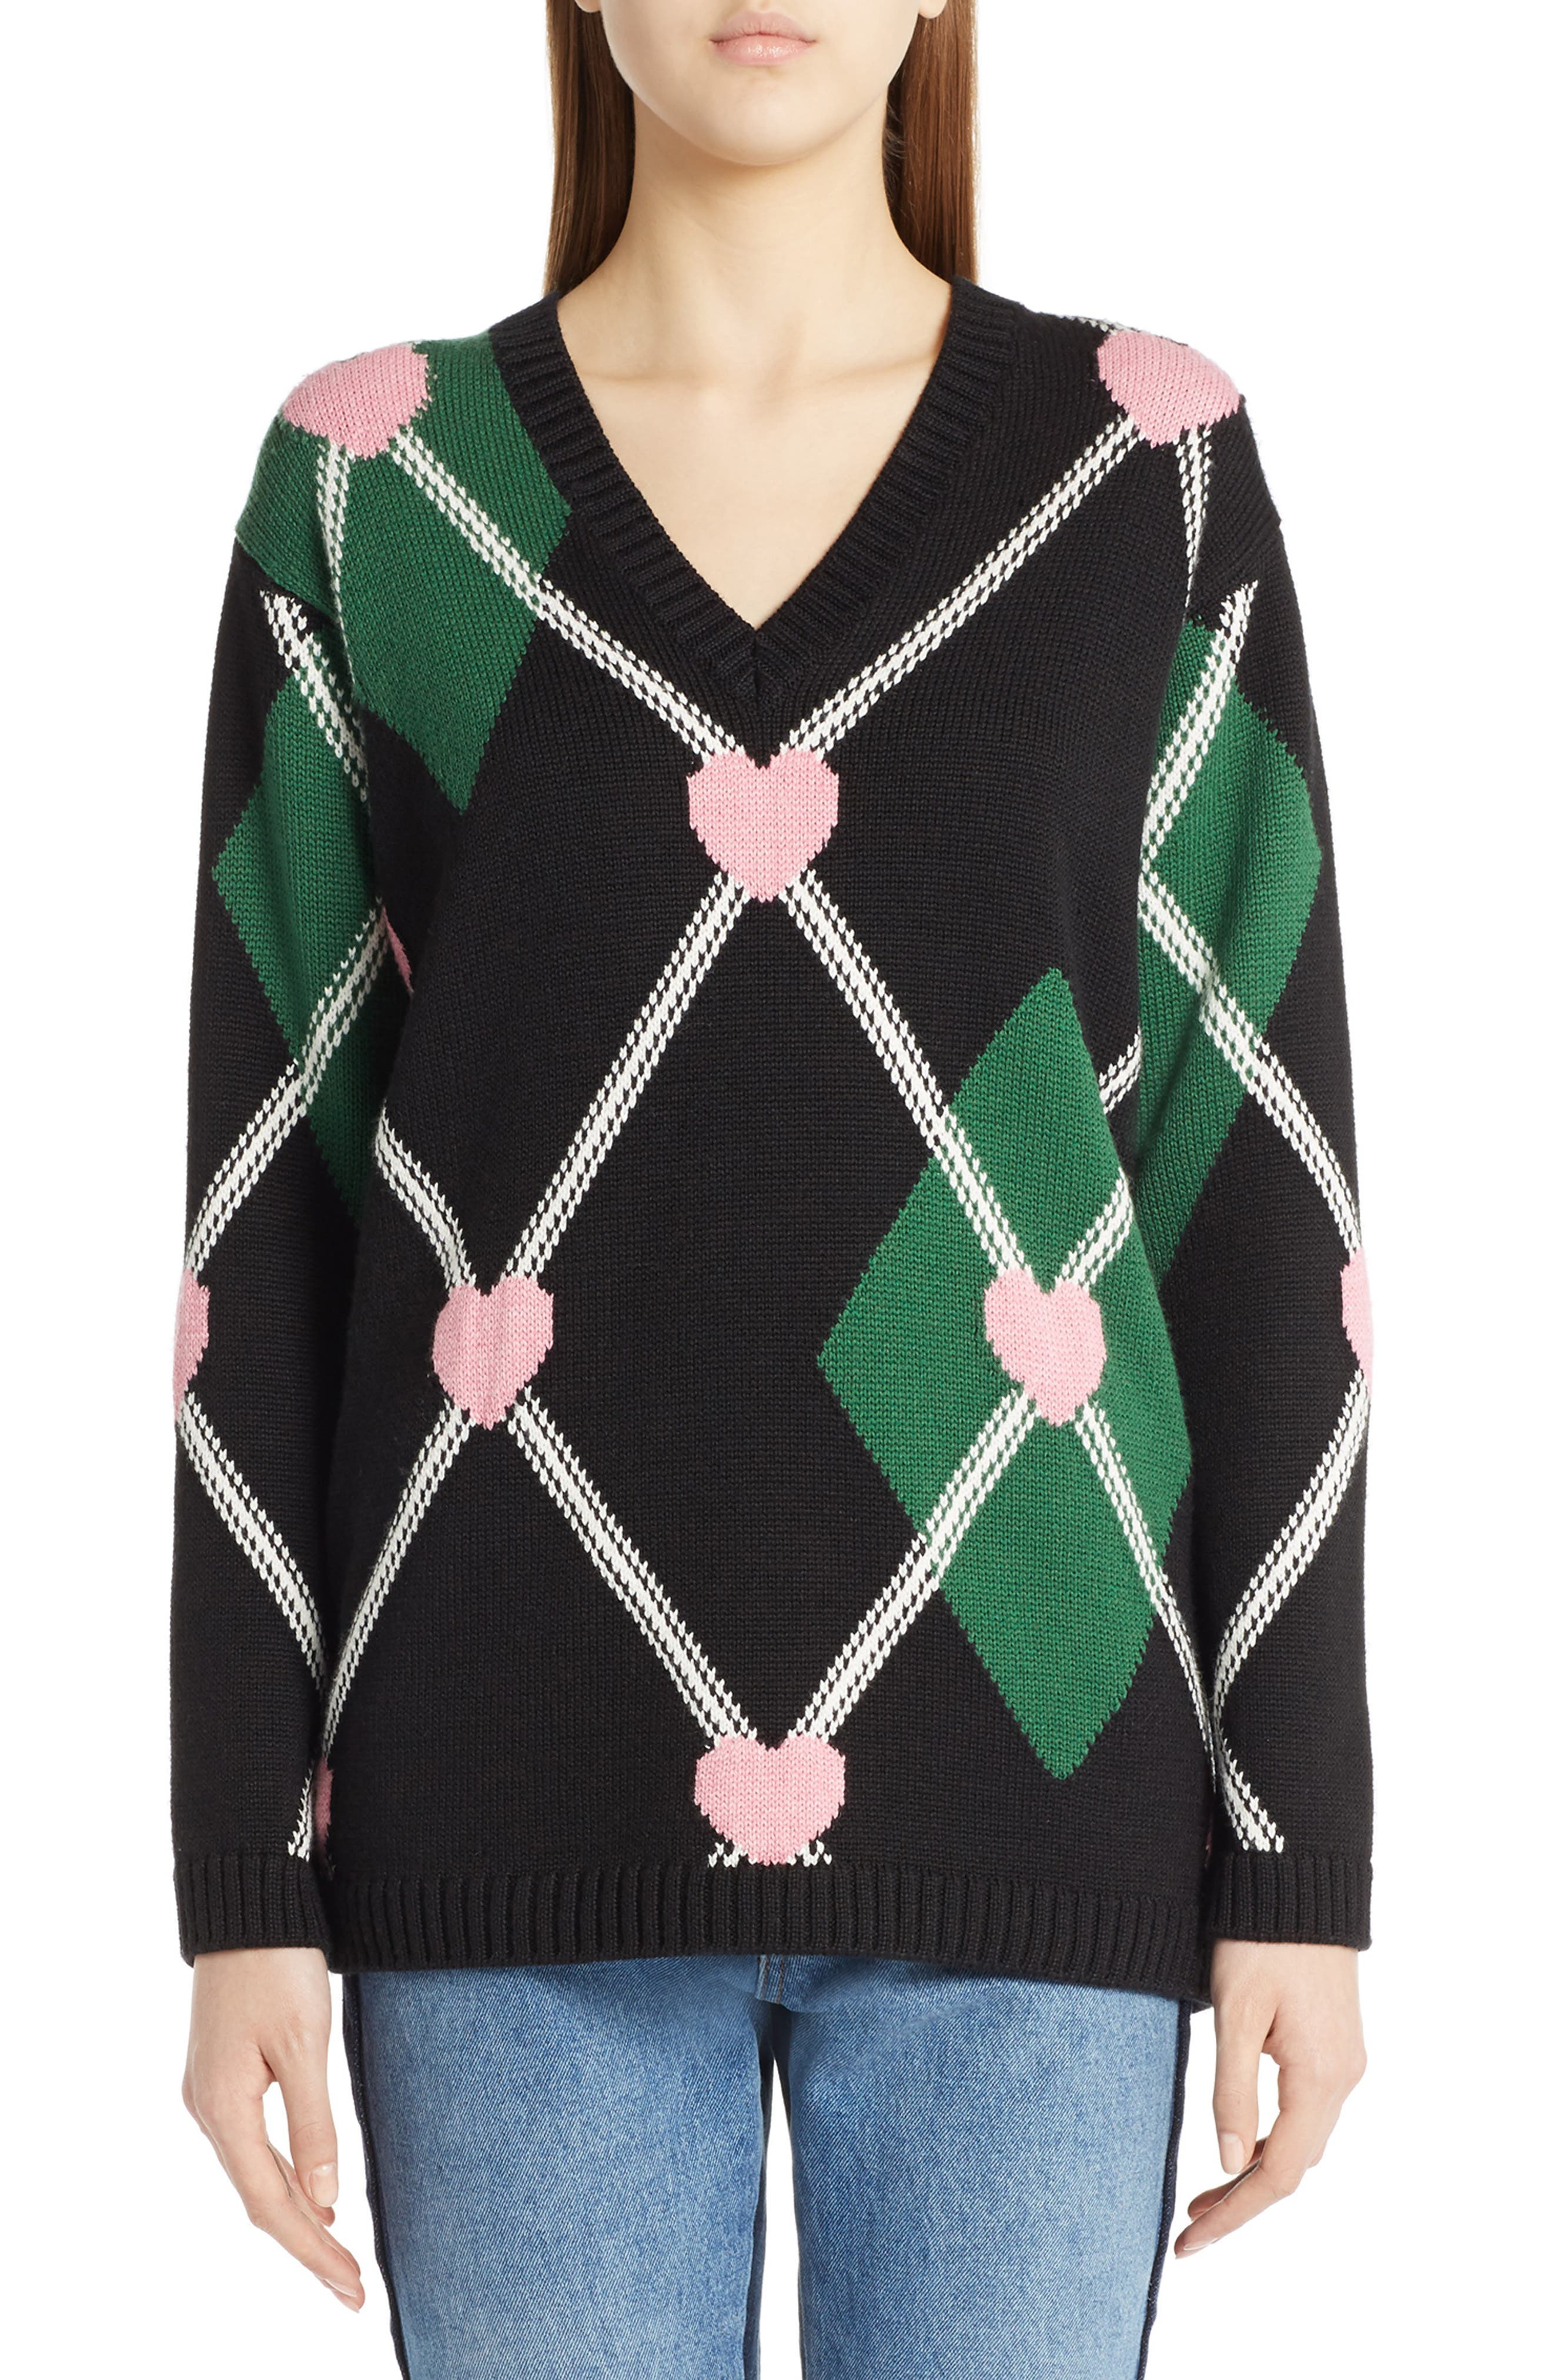 Argyle Heart Sweater,                             Main thumbnail 1, color,                             001